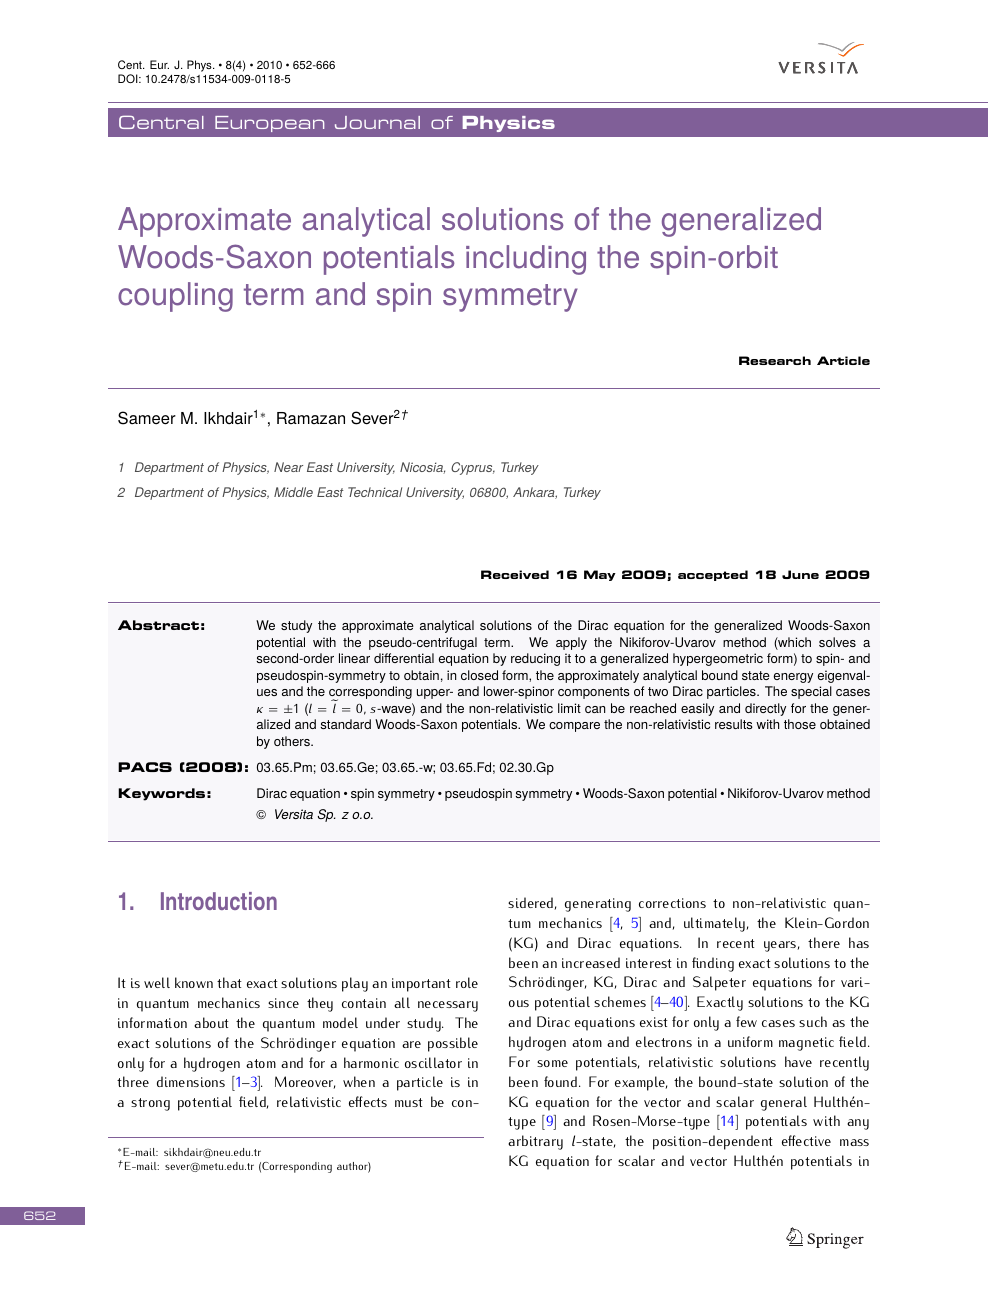 Approximate analytical solutions of the generalized Woods